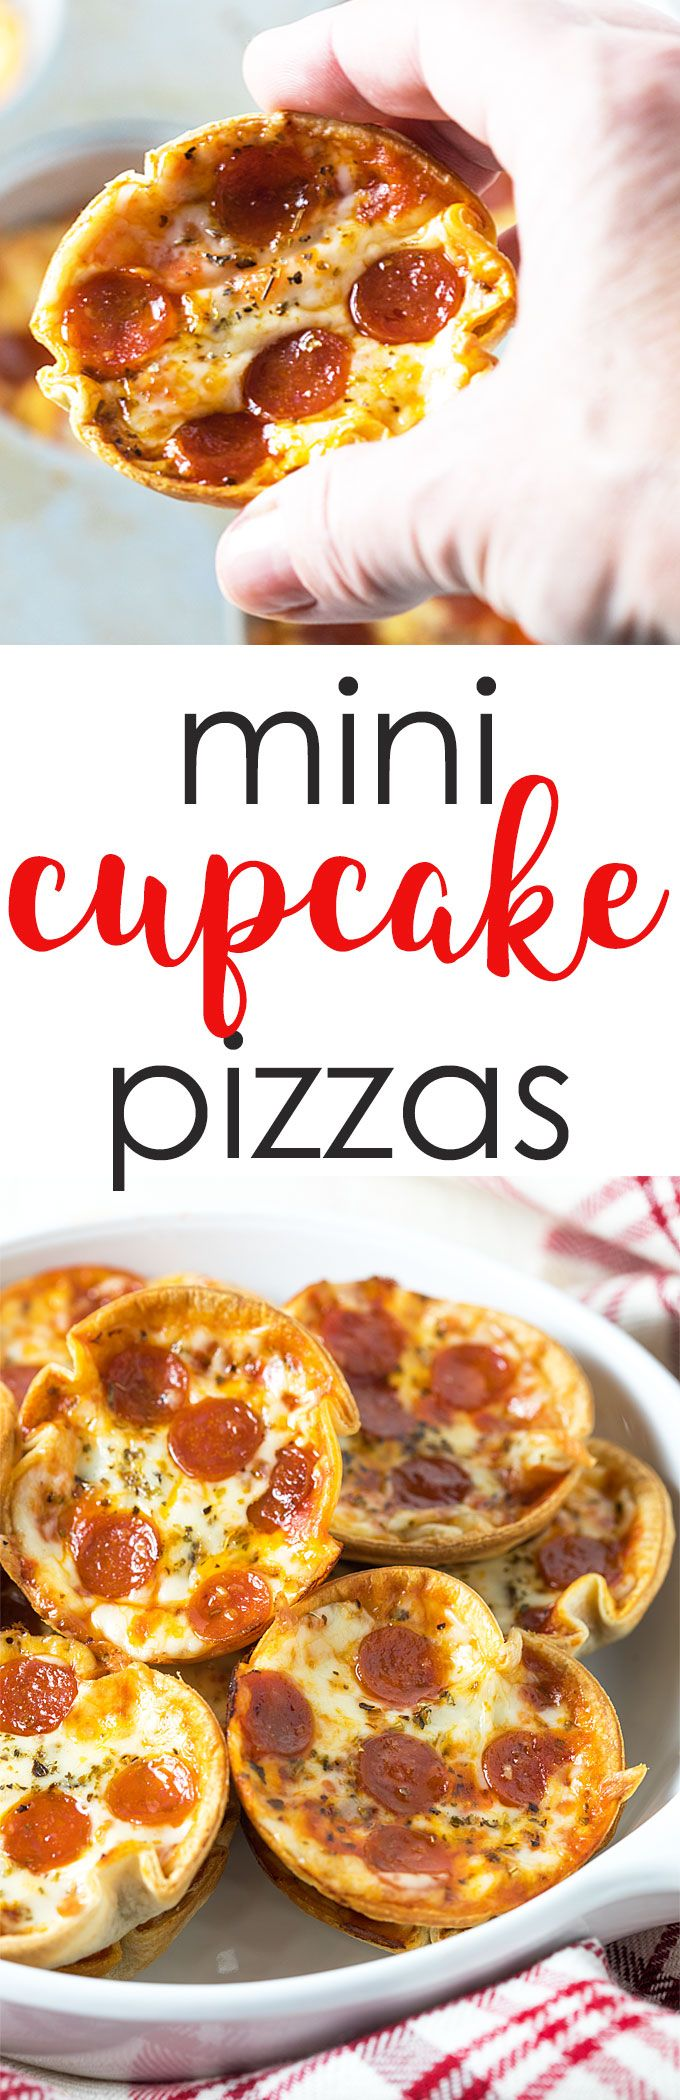 These 5-ingredient mini cupcake pizzas are an easy appetizer or dinner ready in just 20 minutes! #pizza